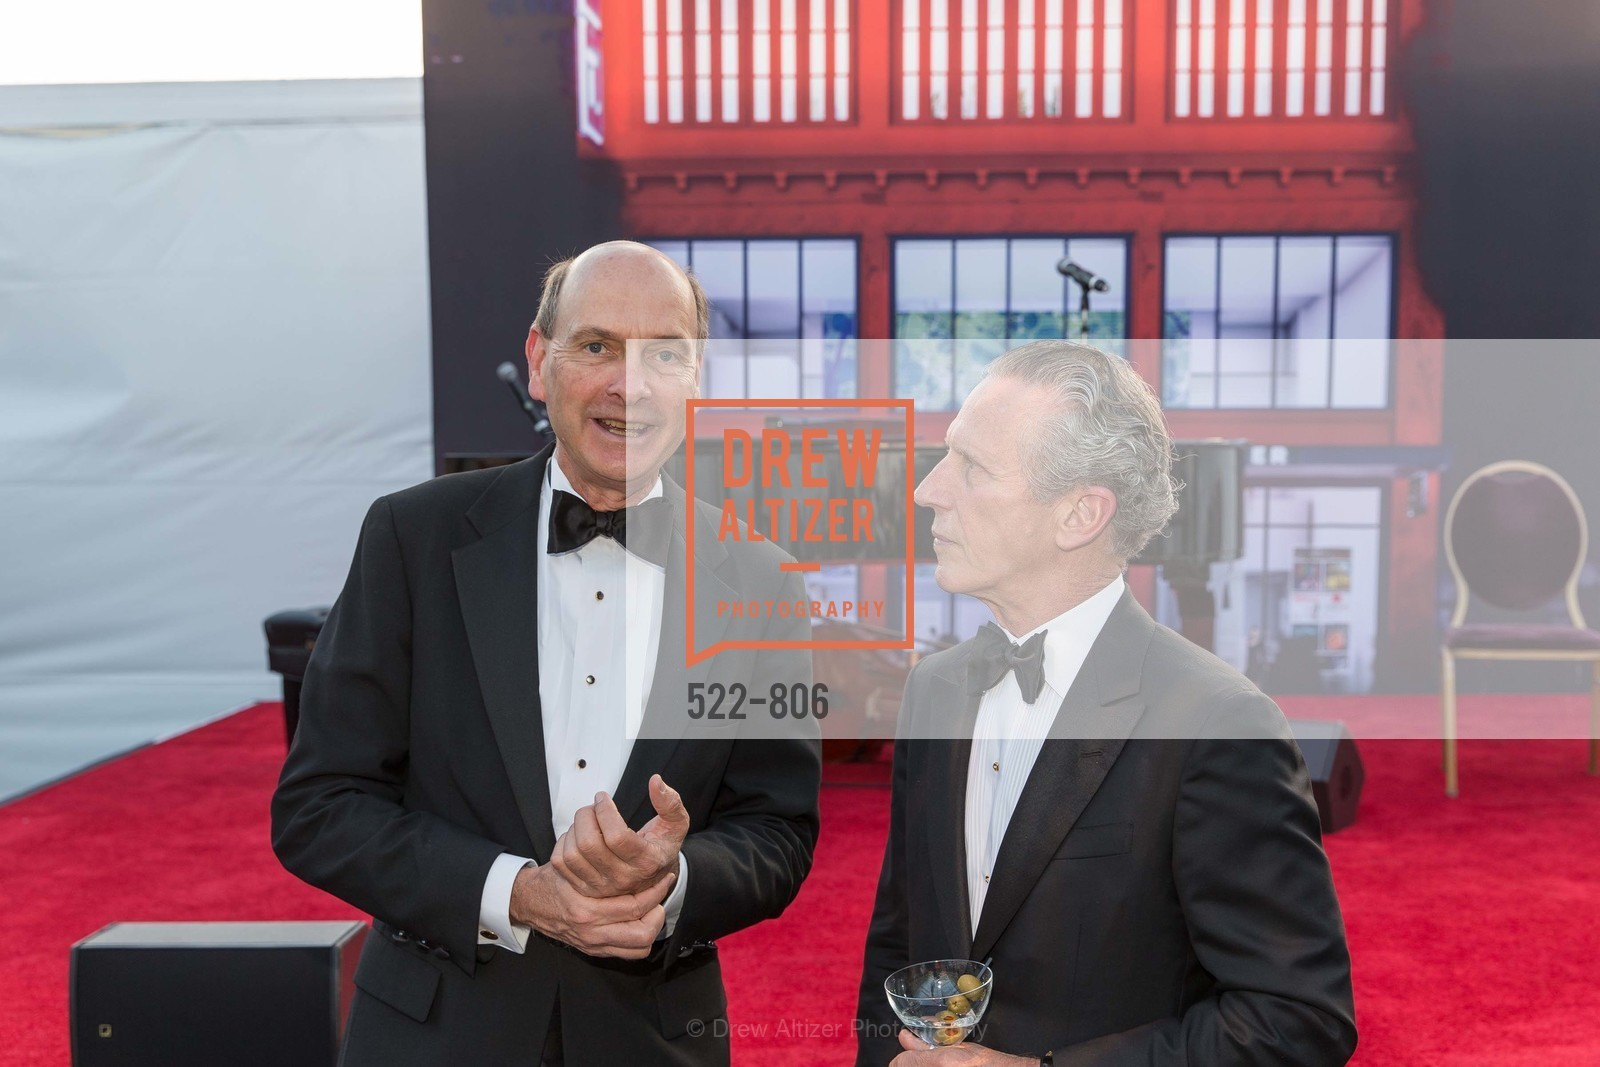 Keith Geeslin, Jim Marver, A.C.T. Gala Come Get Stranded, US, April 25th, 2015,Drew Altizer, Drew Altizer Photography, full-service agency, private events, San Francisco photographer, photographer california